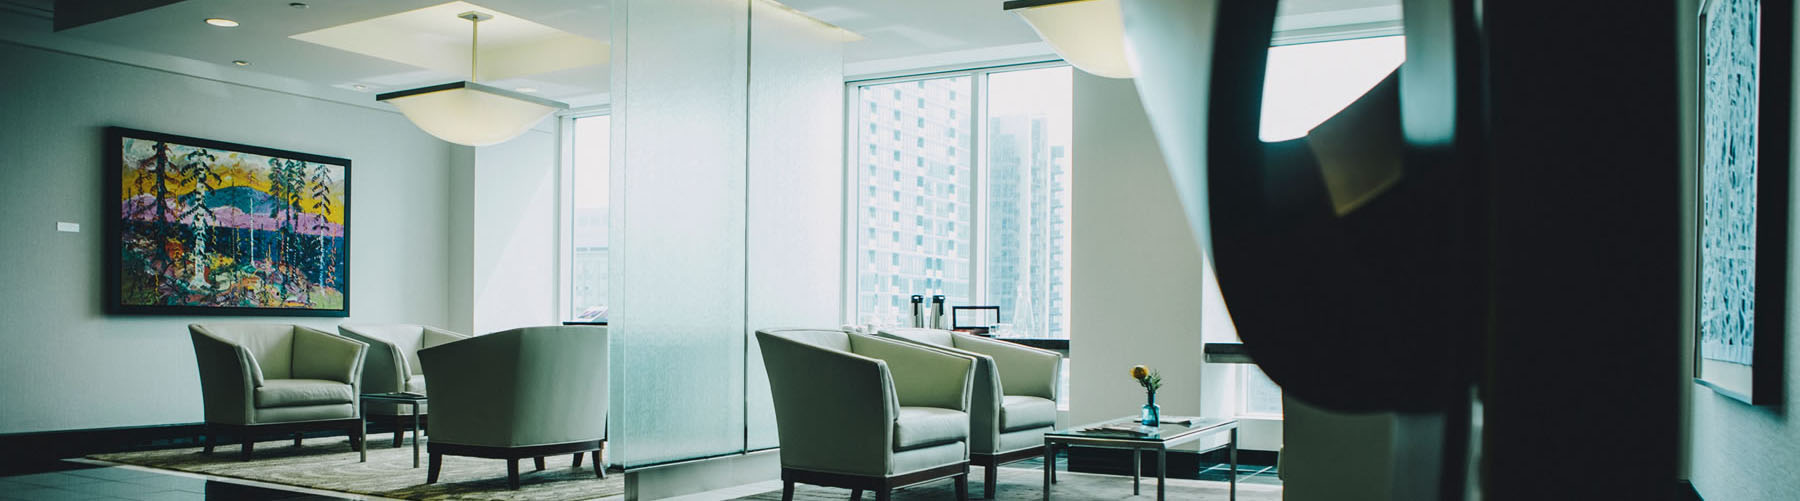 Law firm office lounge